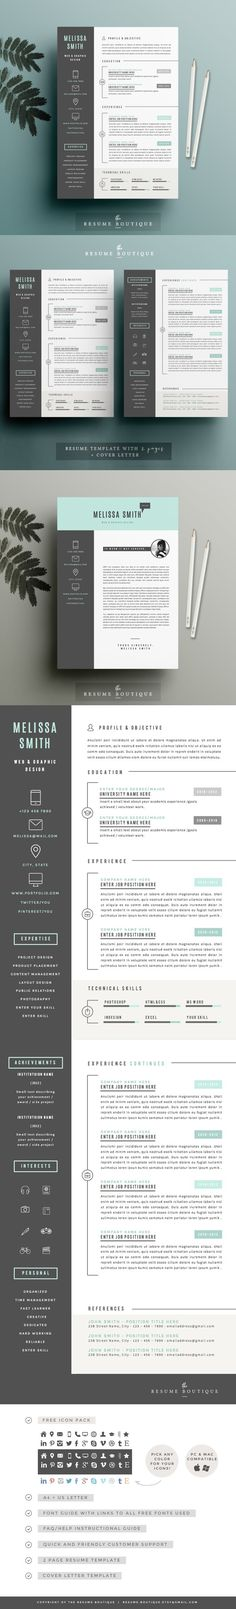 Resume template + FREE Cover Letter - Resumes Girlboss - resume templates website